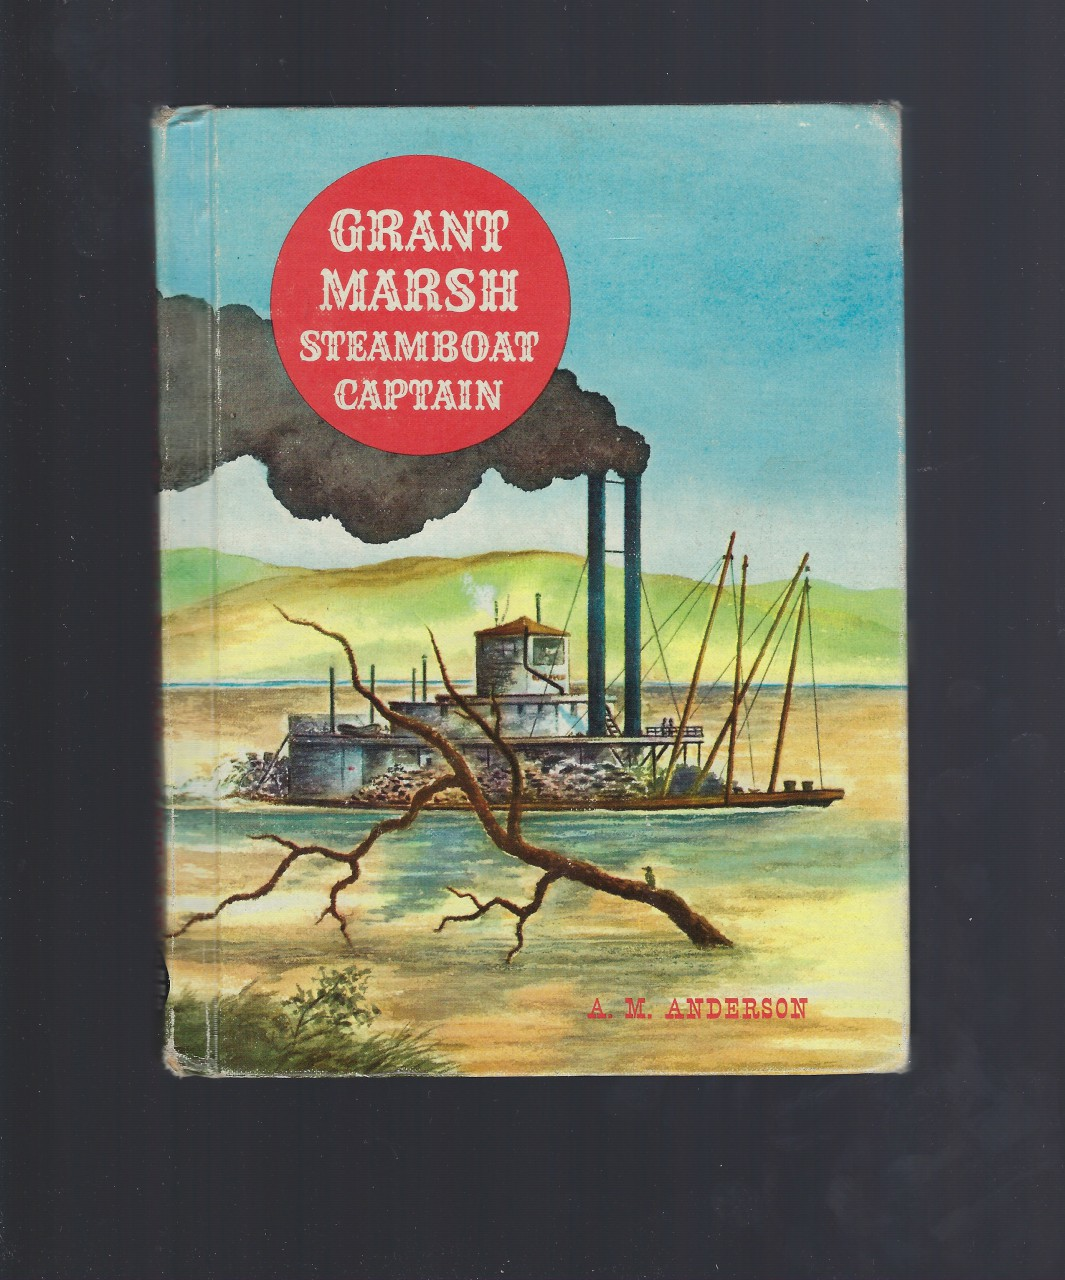 Grant Marsh Steamboat Captain 1st Ed (American Adventure Series) 1959, A. M. Anderson; Jack Merryweather [Illustrator]